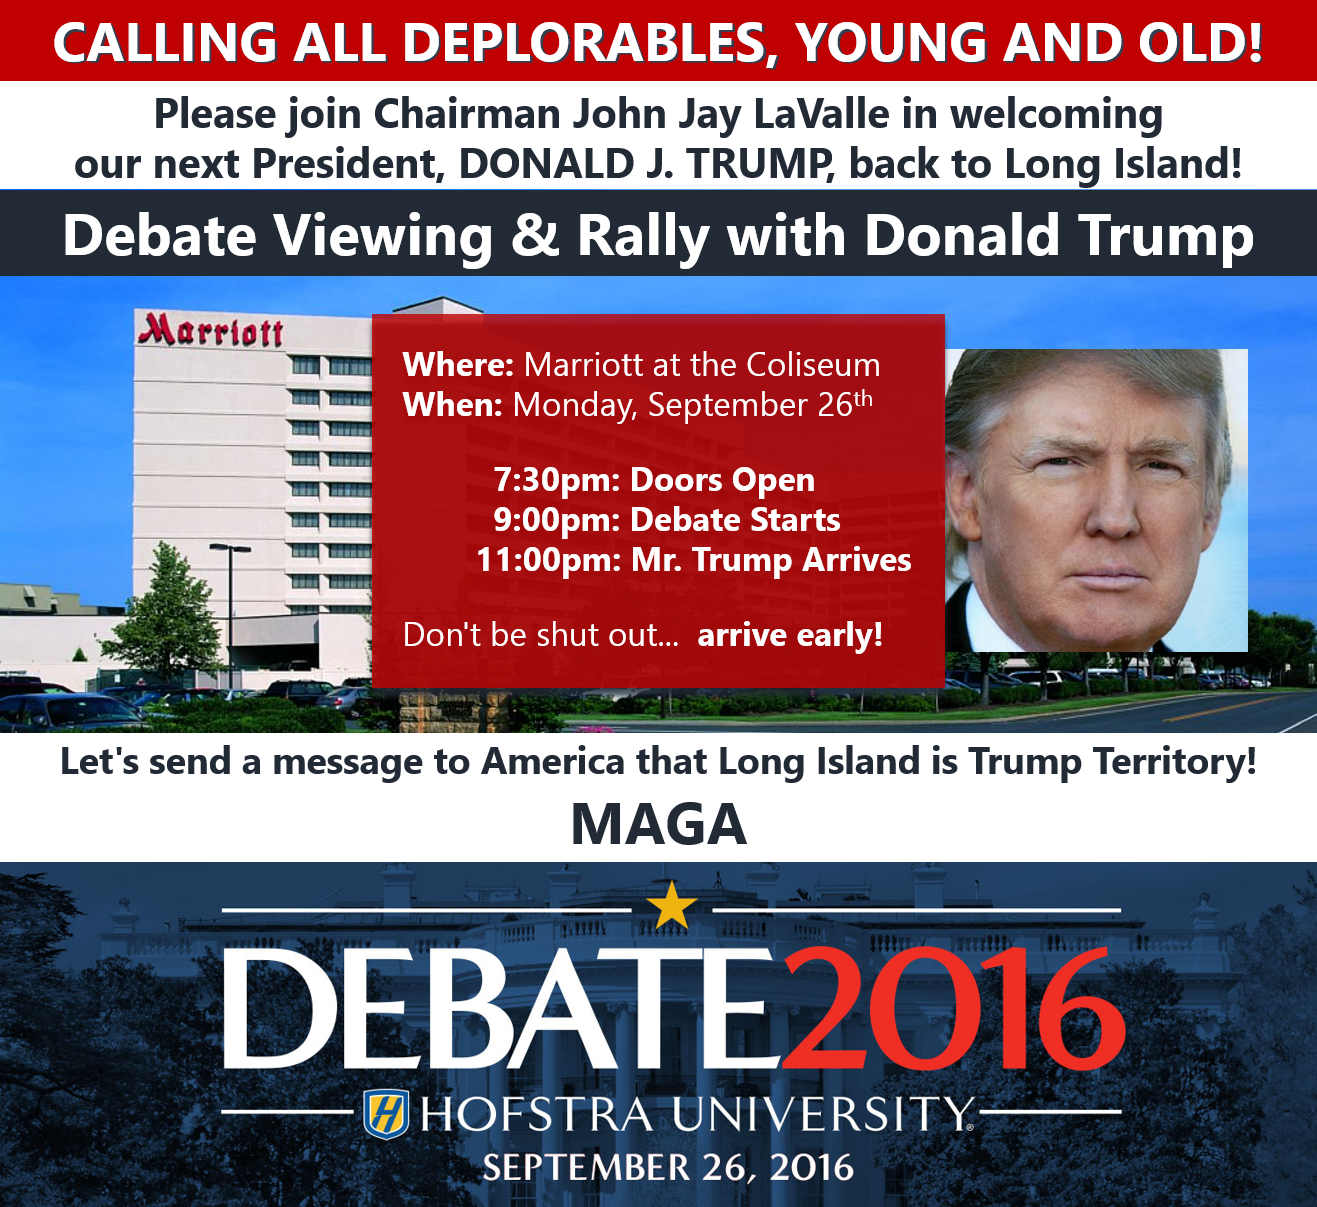 Presidential Debate Viewing and Rally with Donald Trump